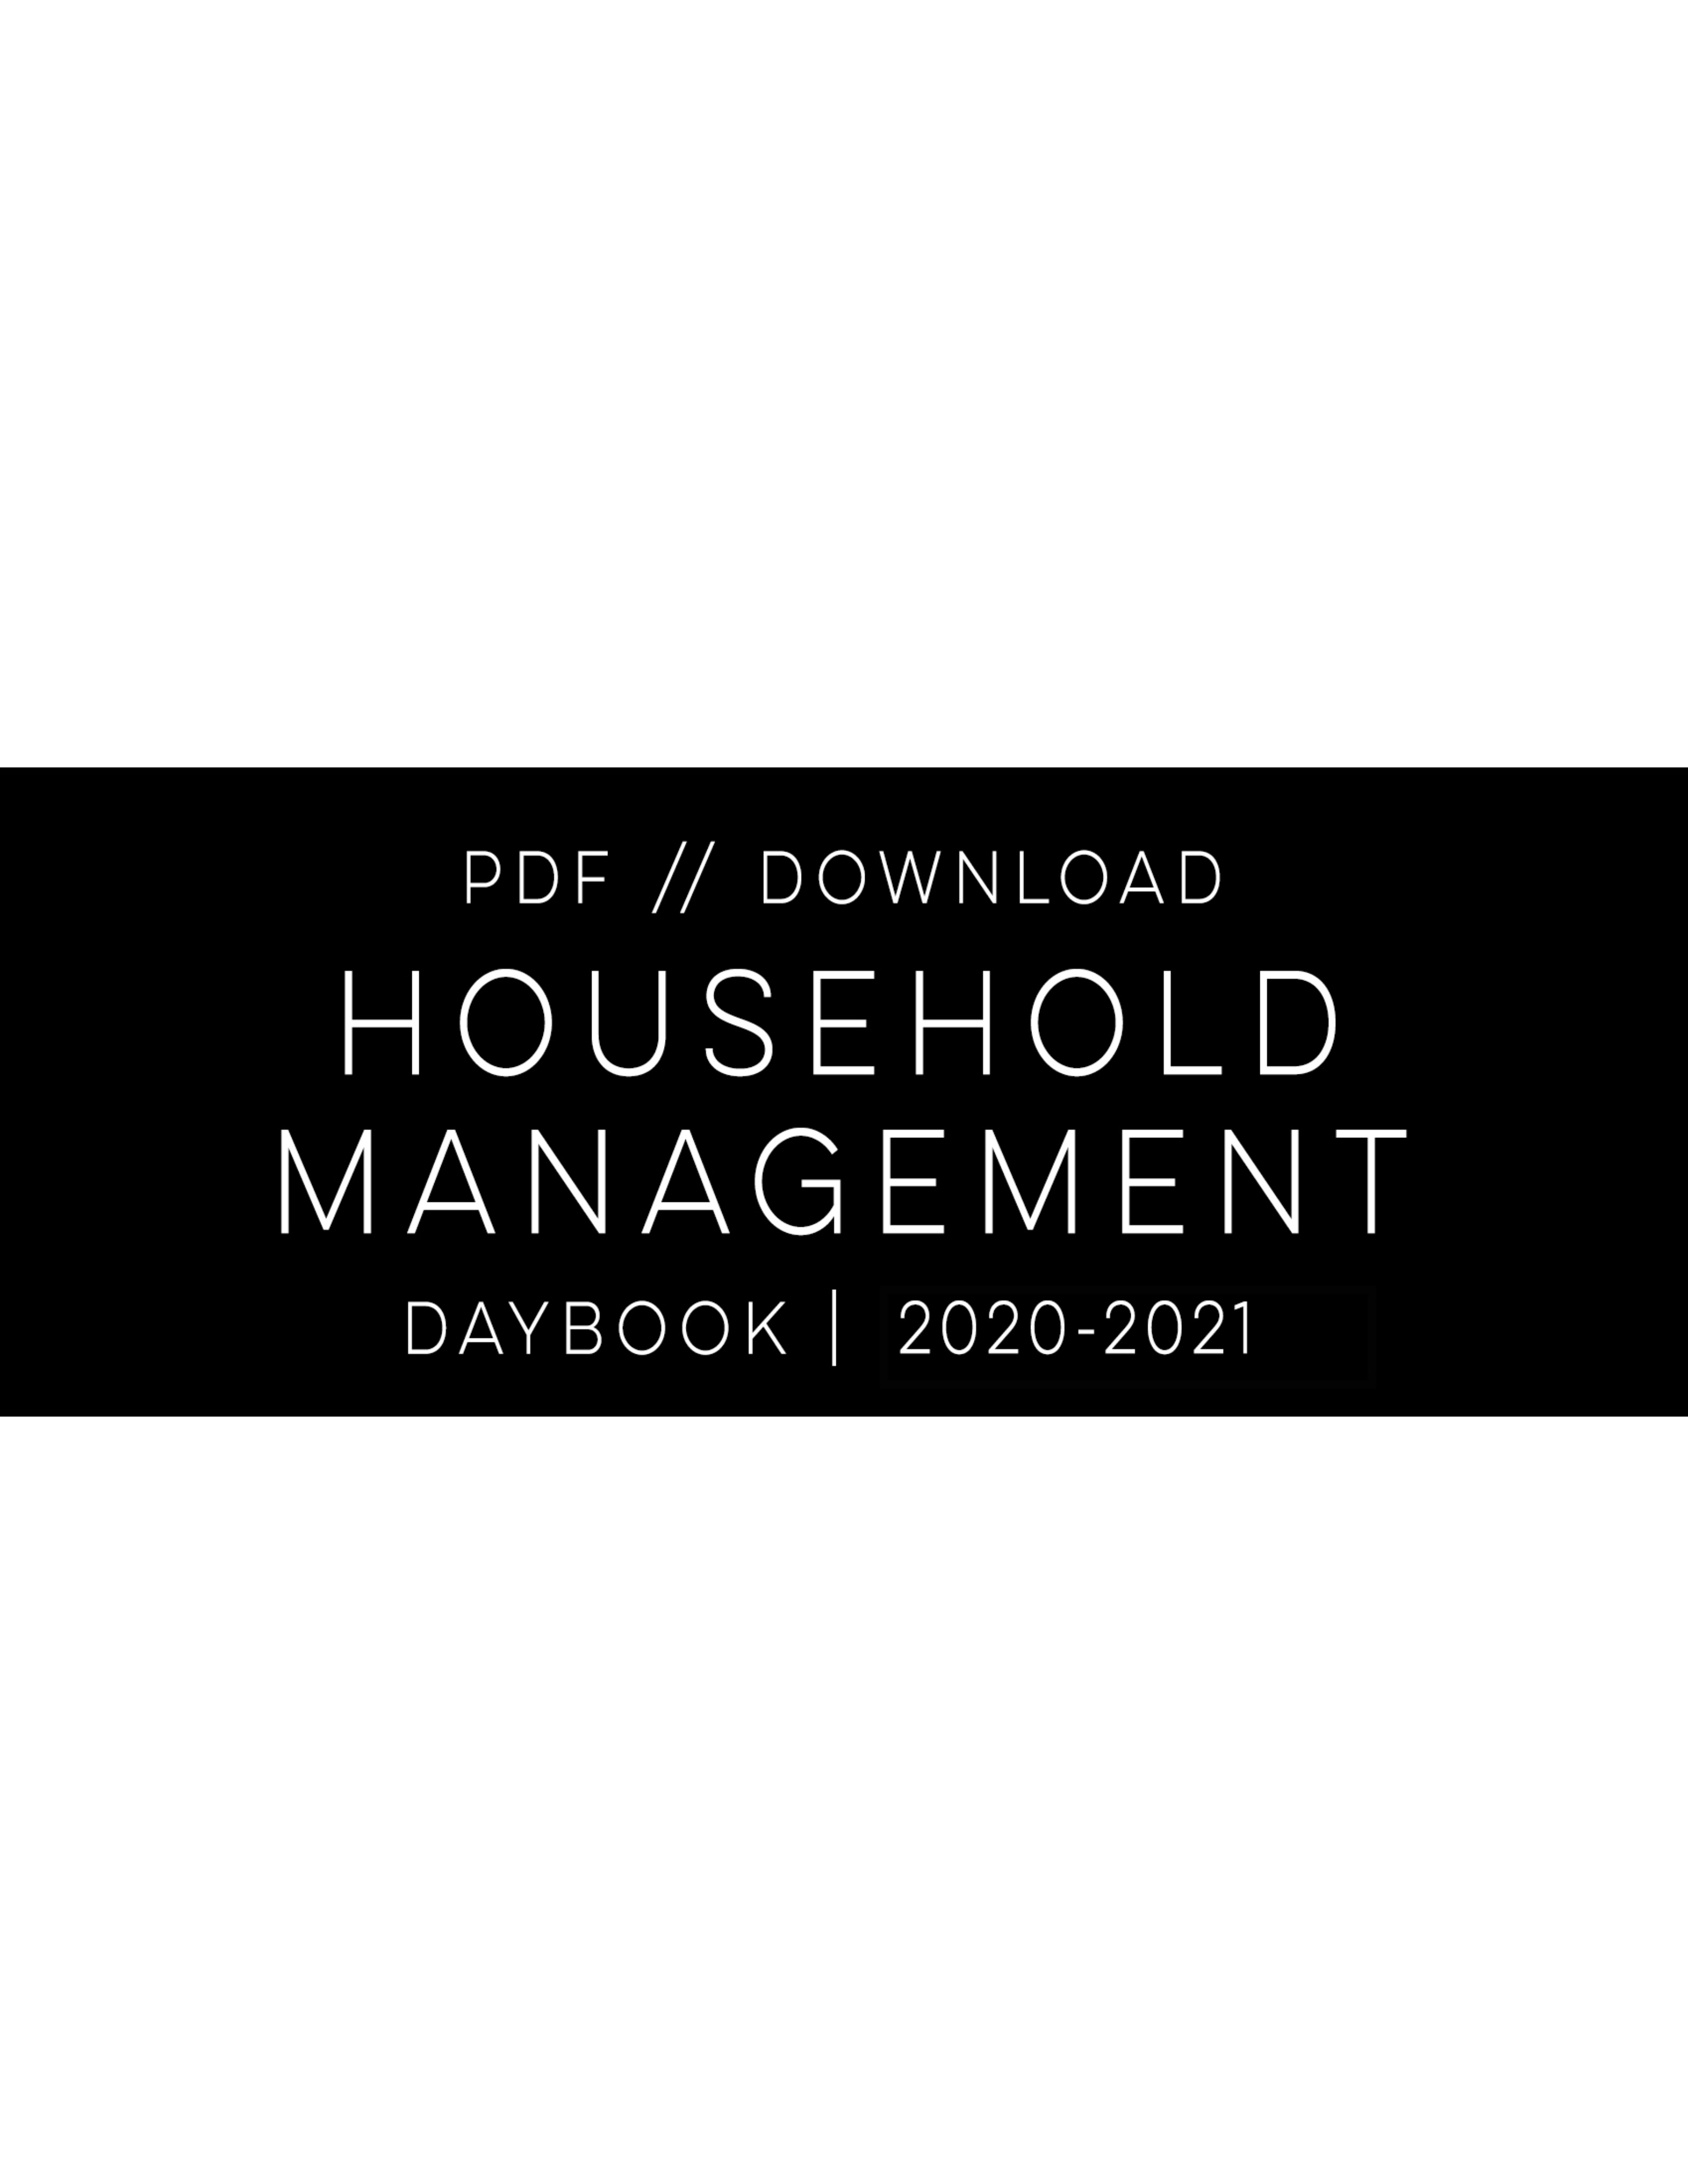 PDF - 2020-2021 DAYBOOK || Household Management